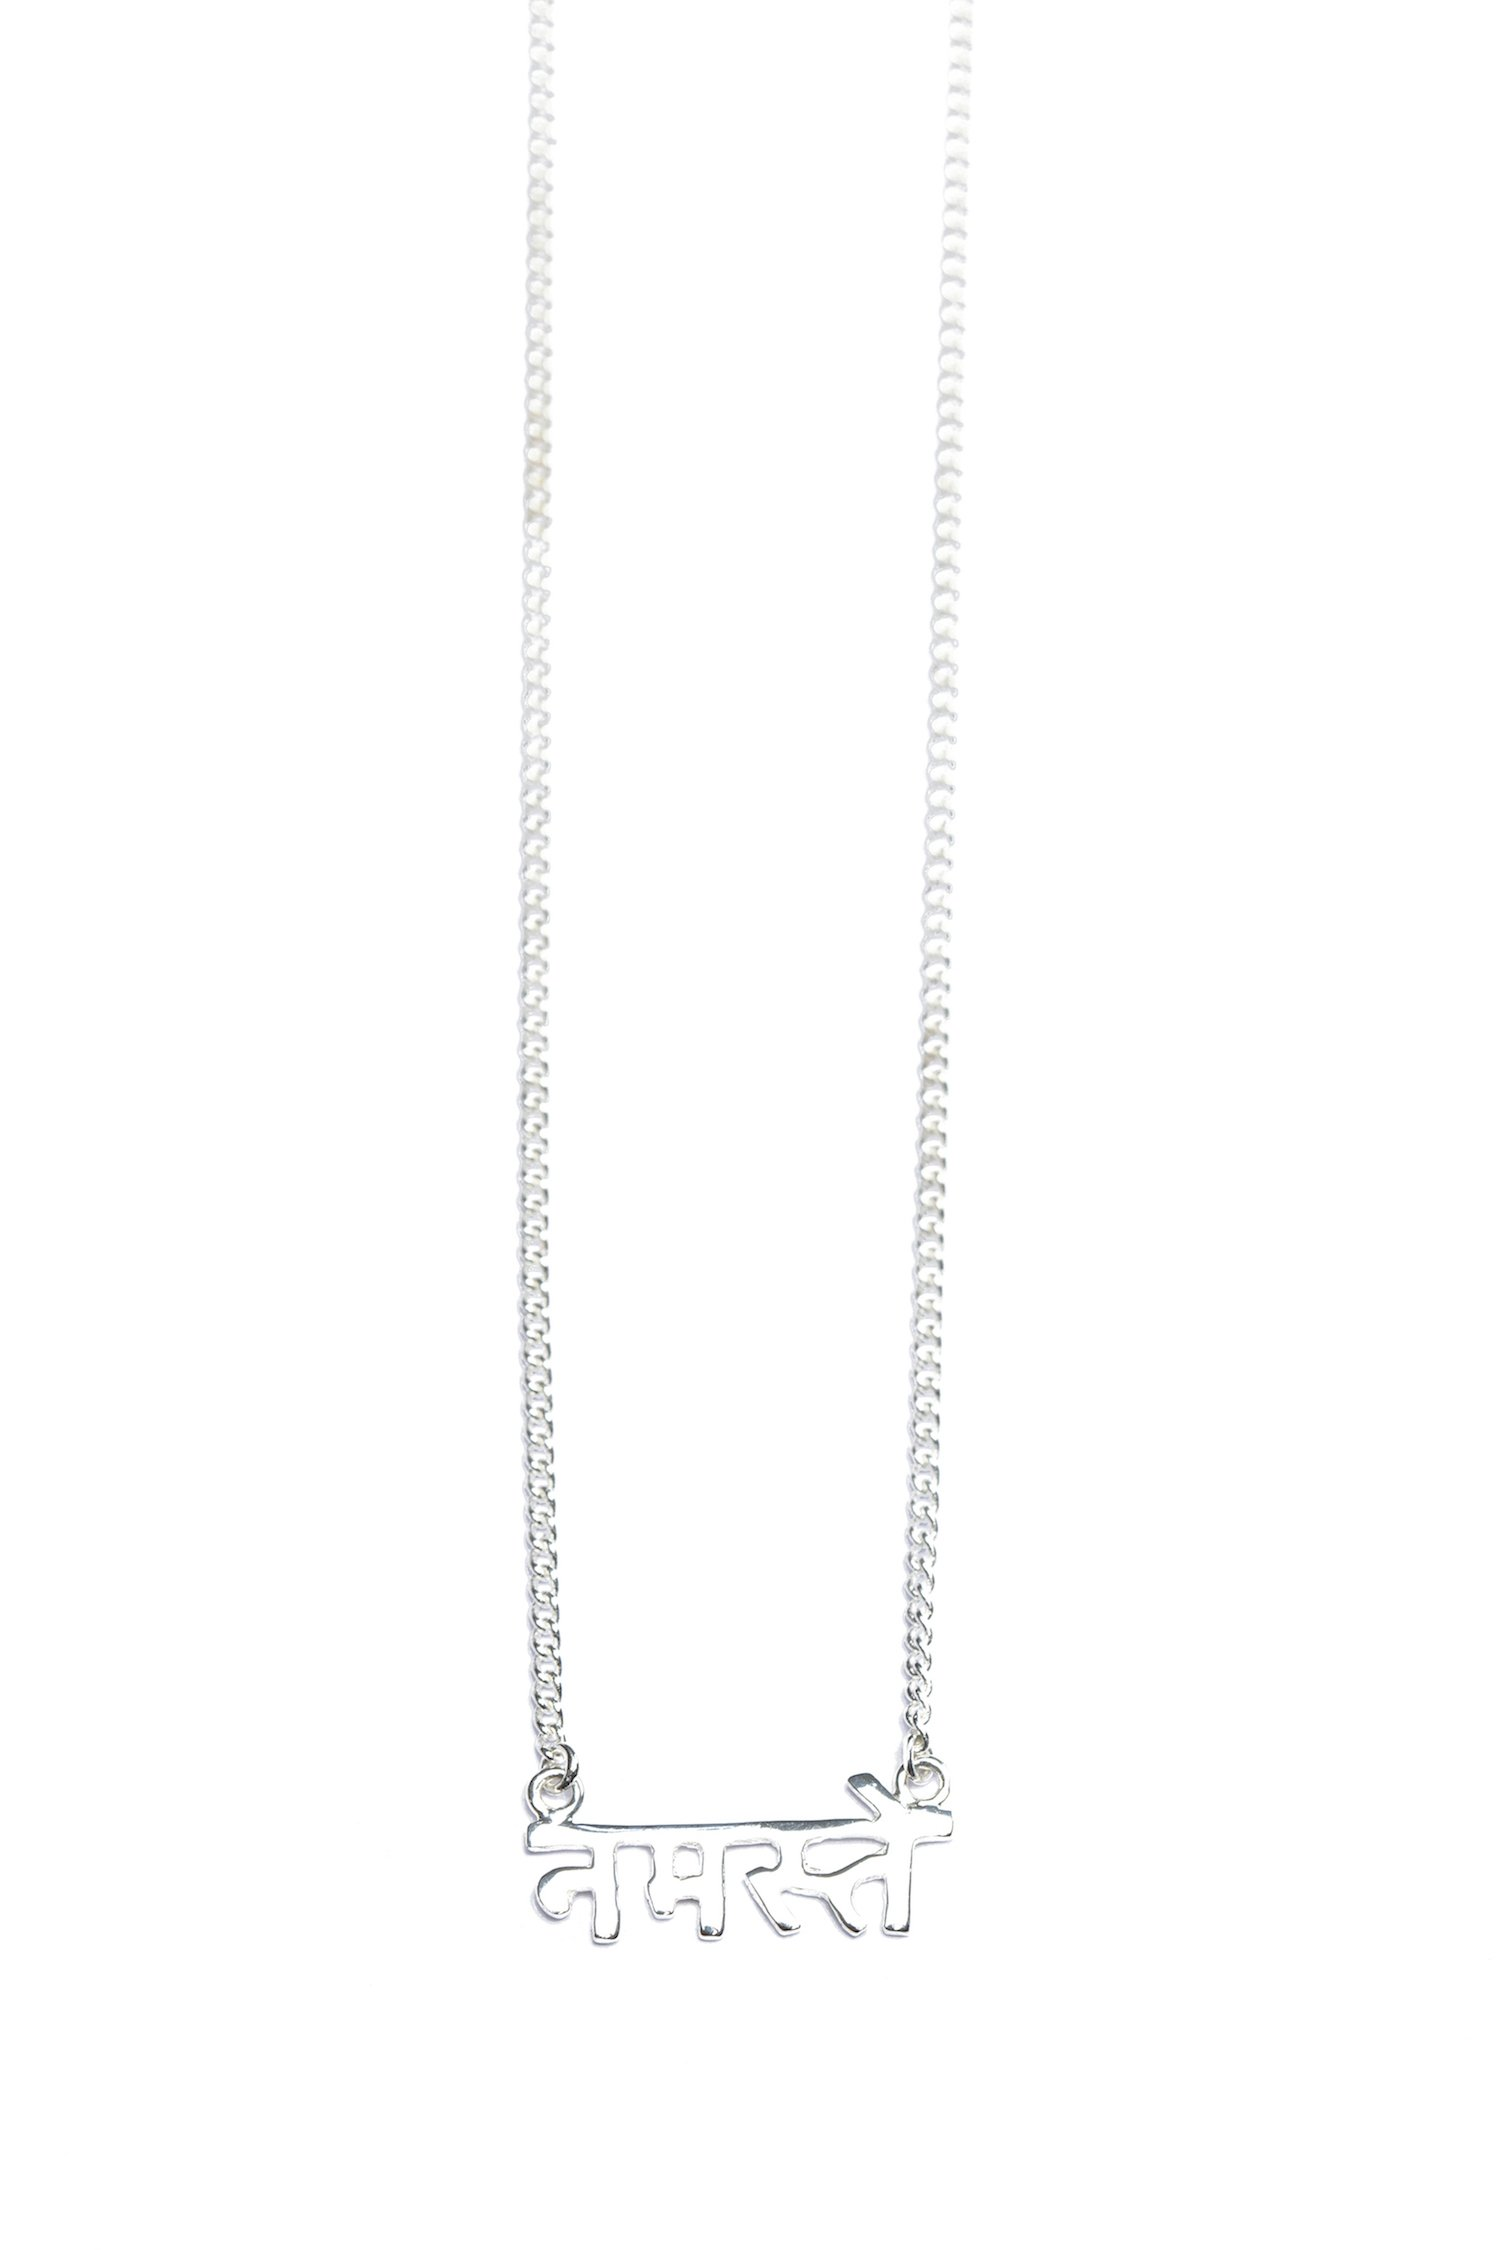 Namaste - Sanskrit Necklace (Silver)